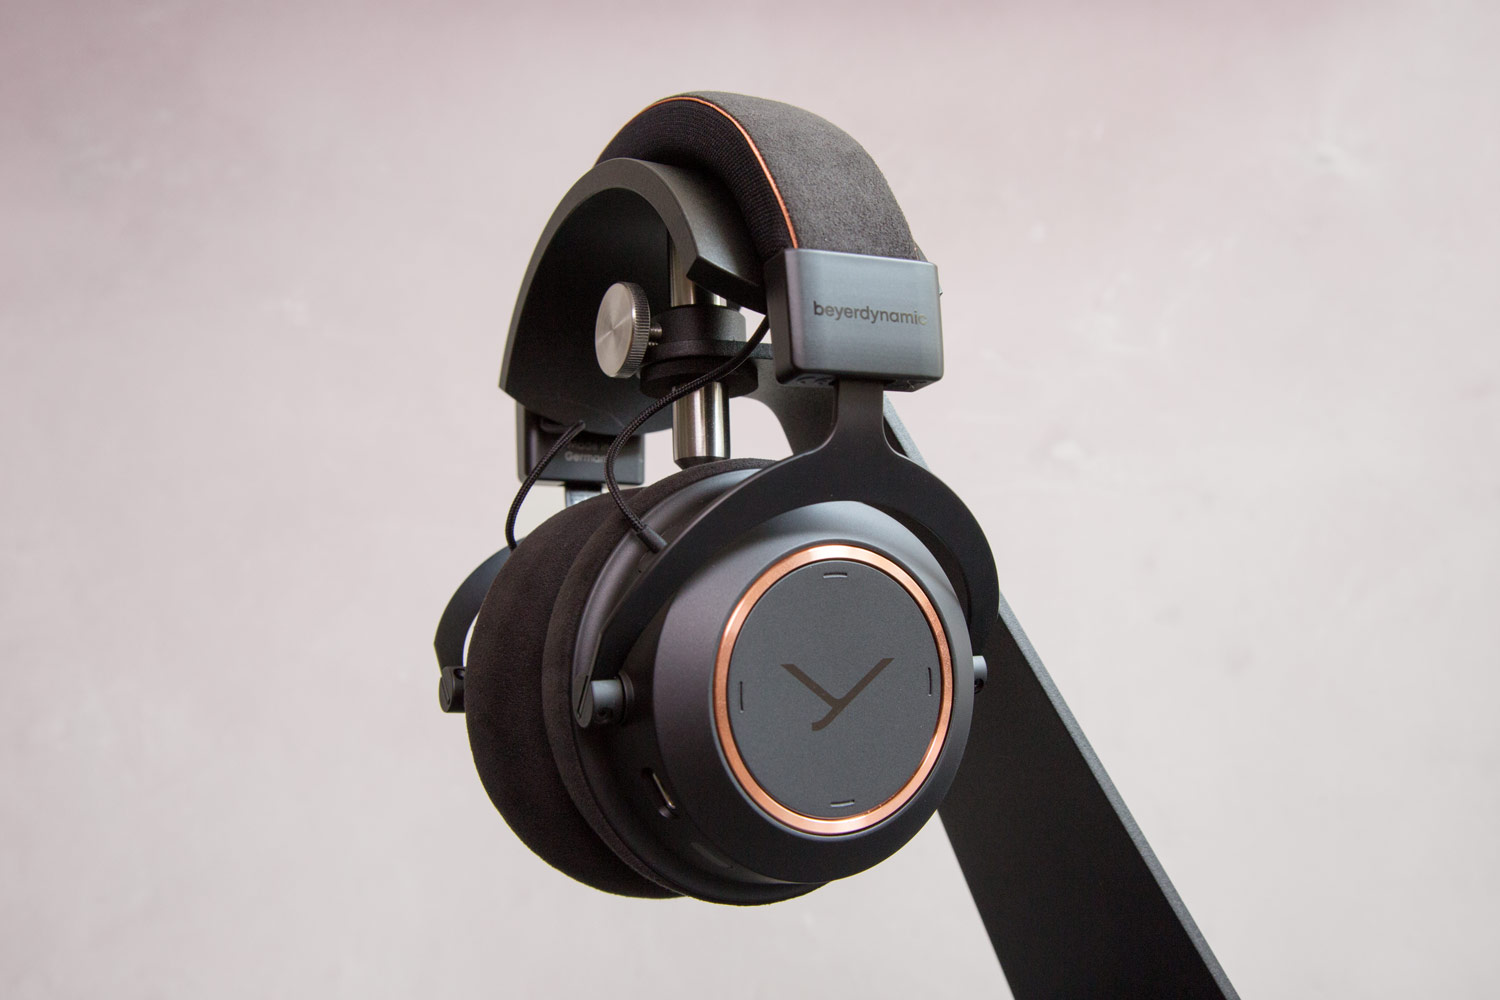 Der Beyerdynamic Amiron Wireless Copper bei HiFi im Hinterhof